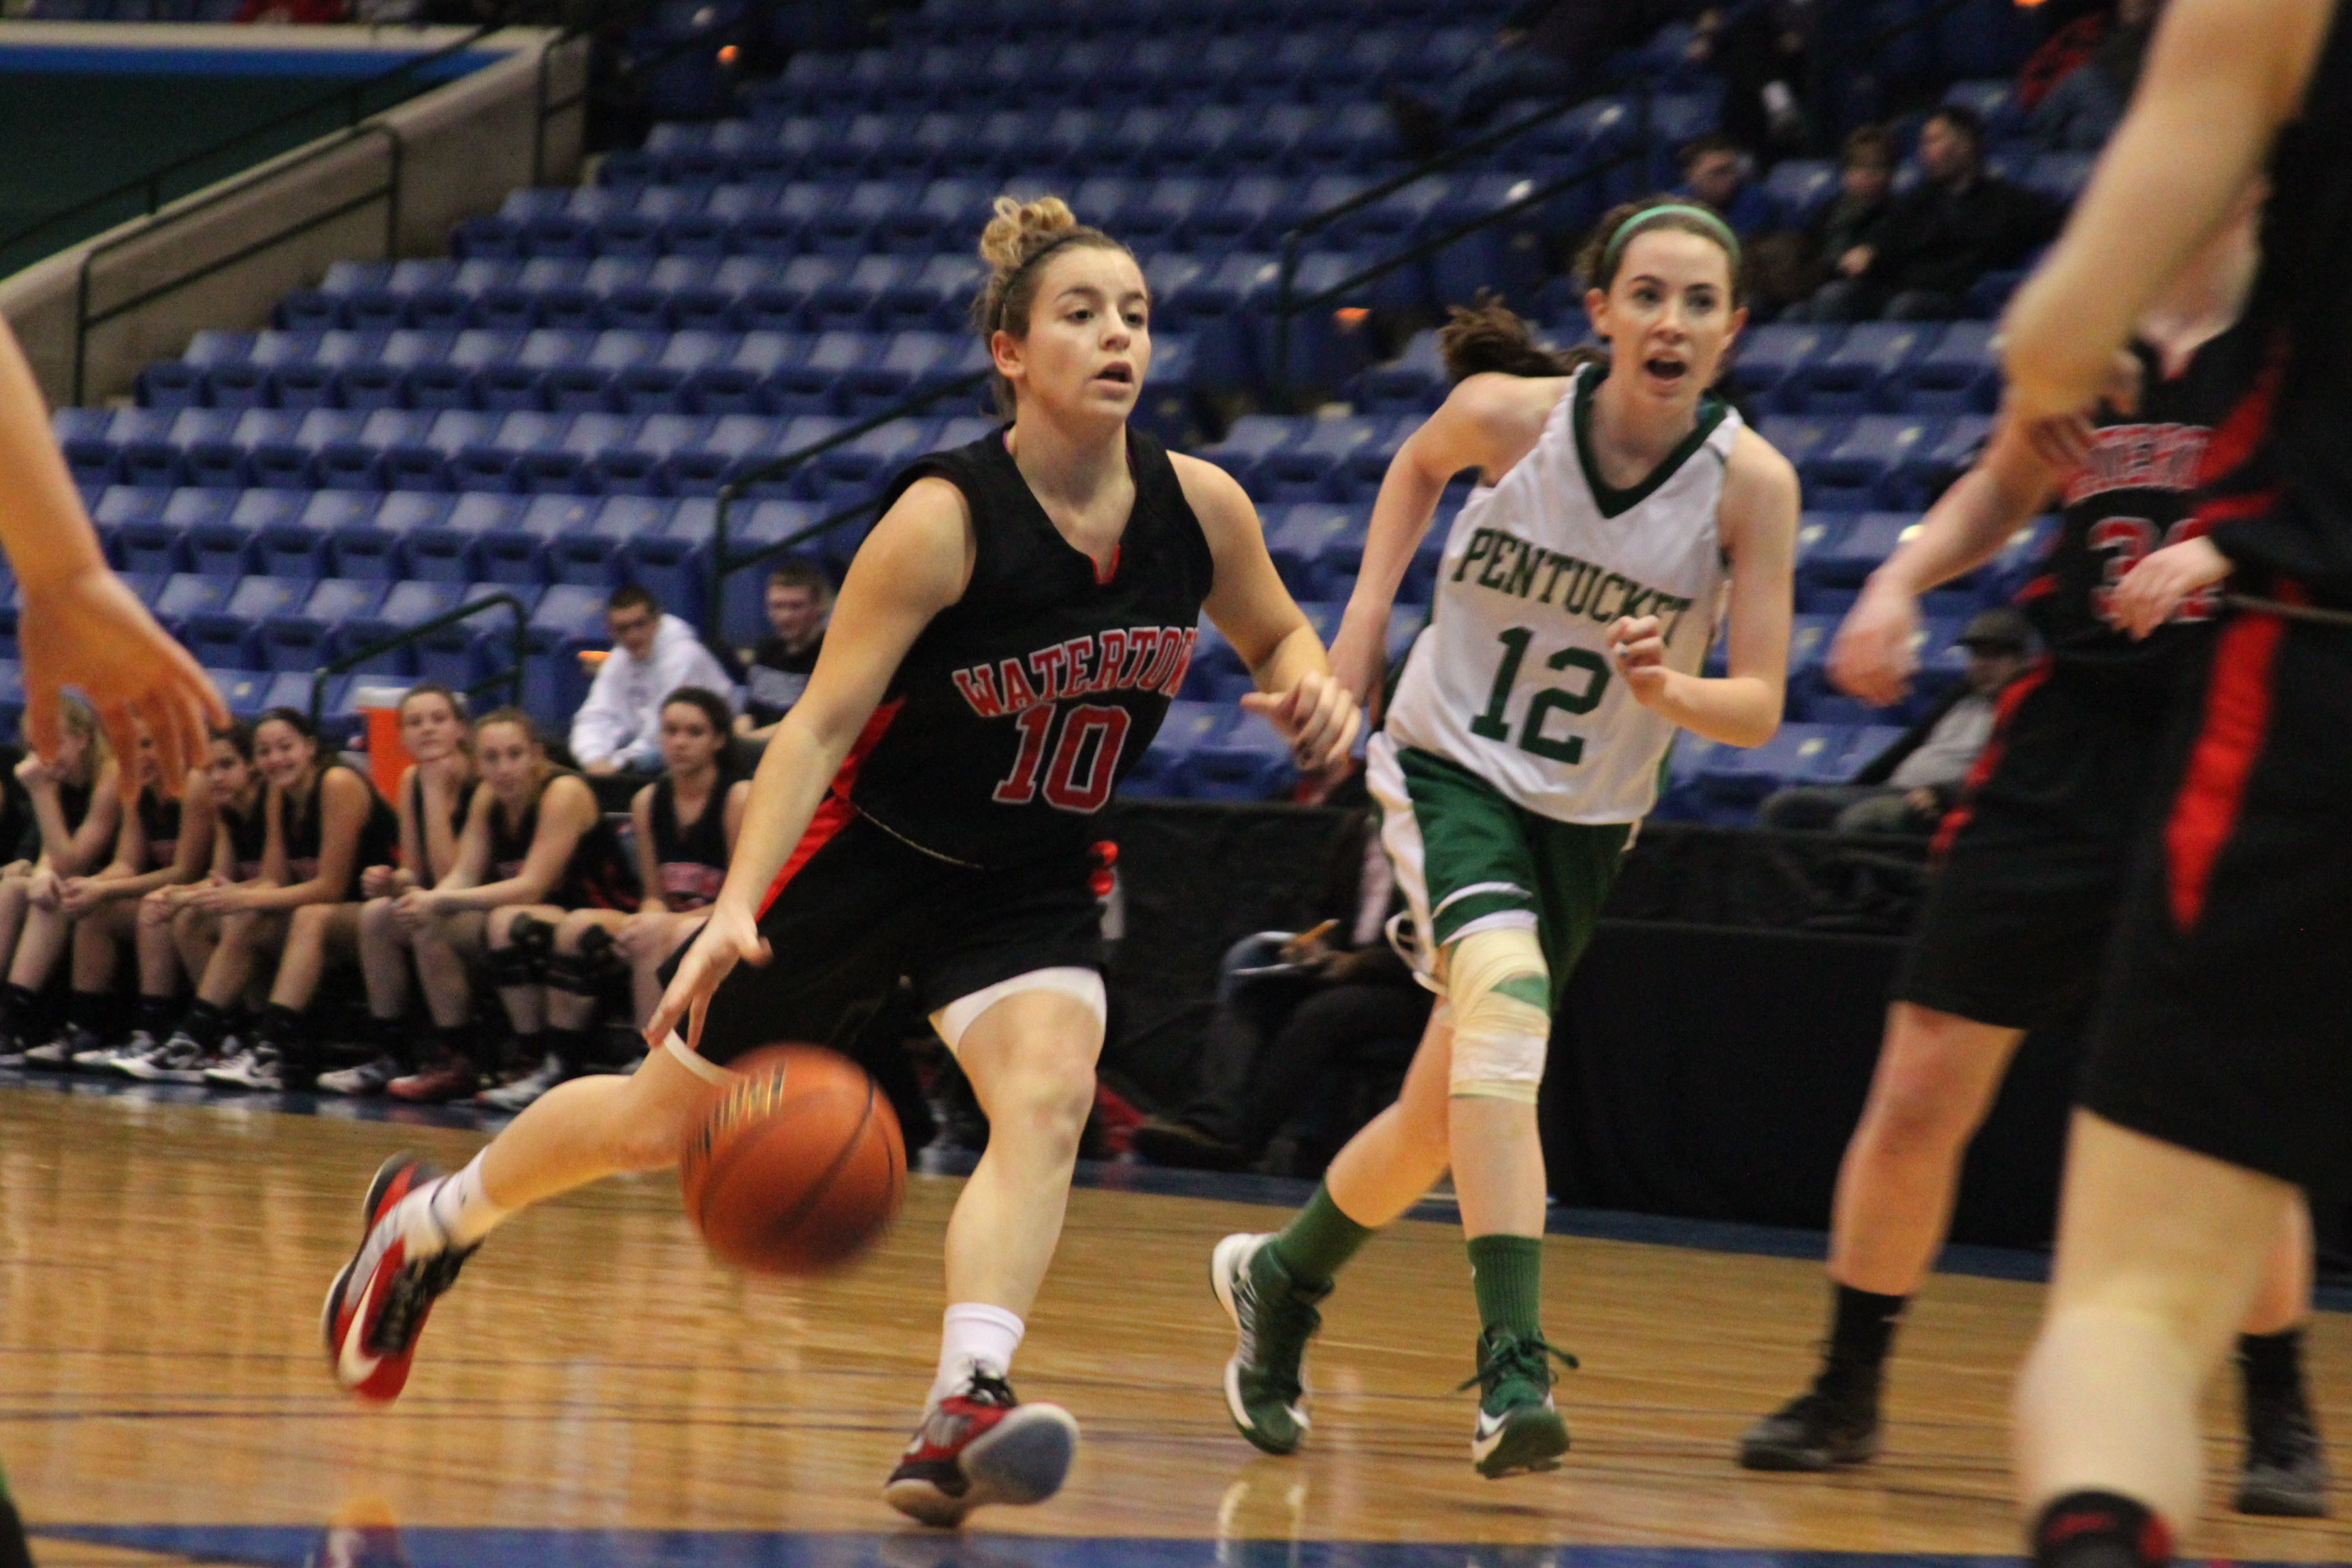 Watertown's girl's basketball team and Gabriella Coppola return to the North Section final for the second straight year. Here Coppola brings the ball up in the 2013 North Section Final against Pentucket. Photo by Charlie Breitrose